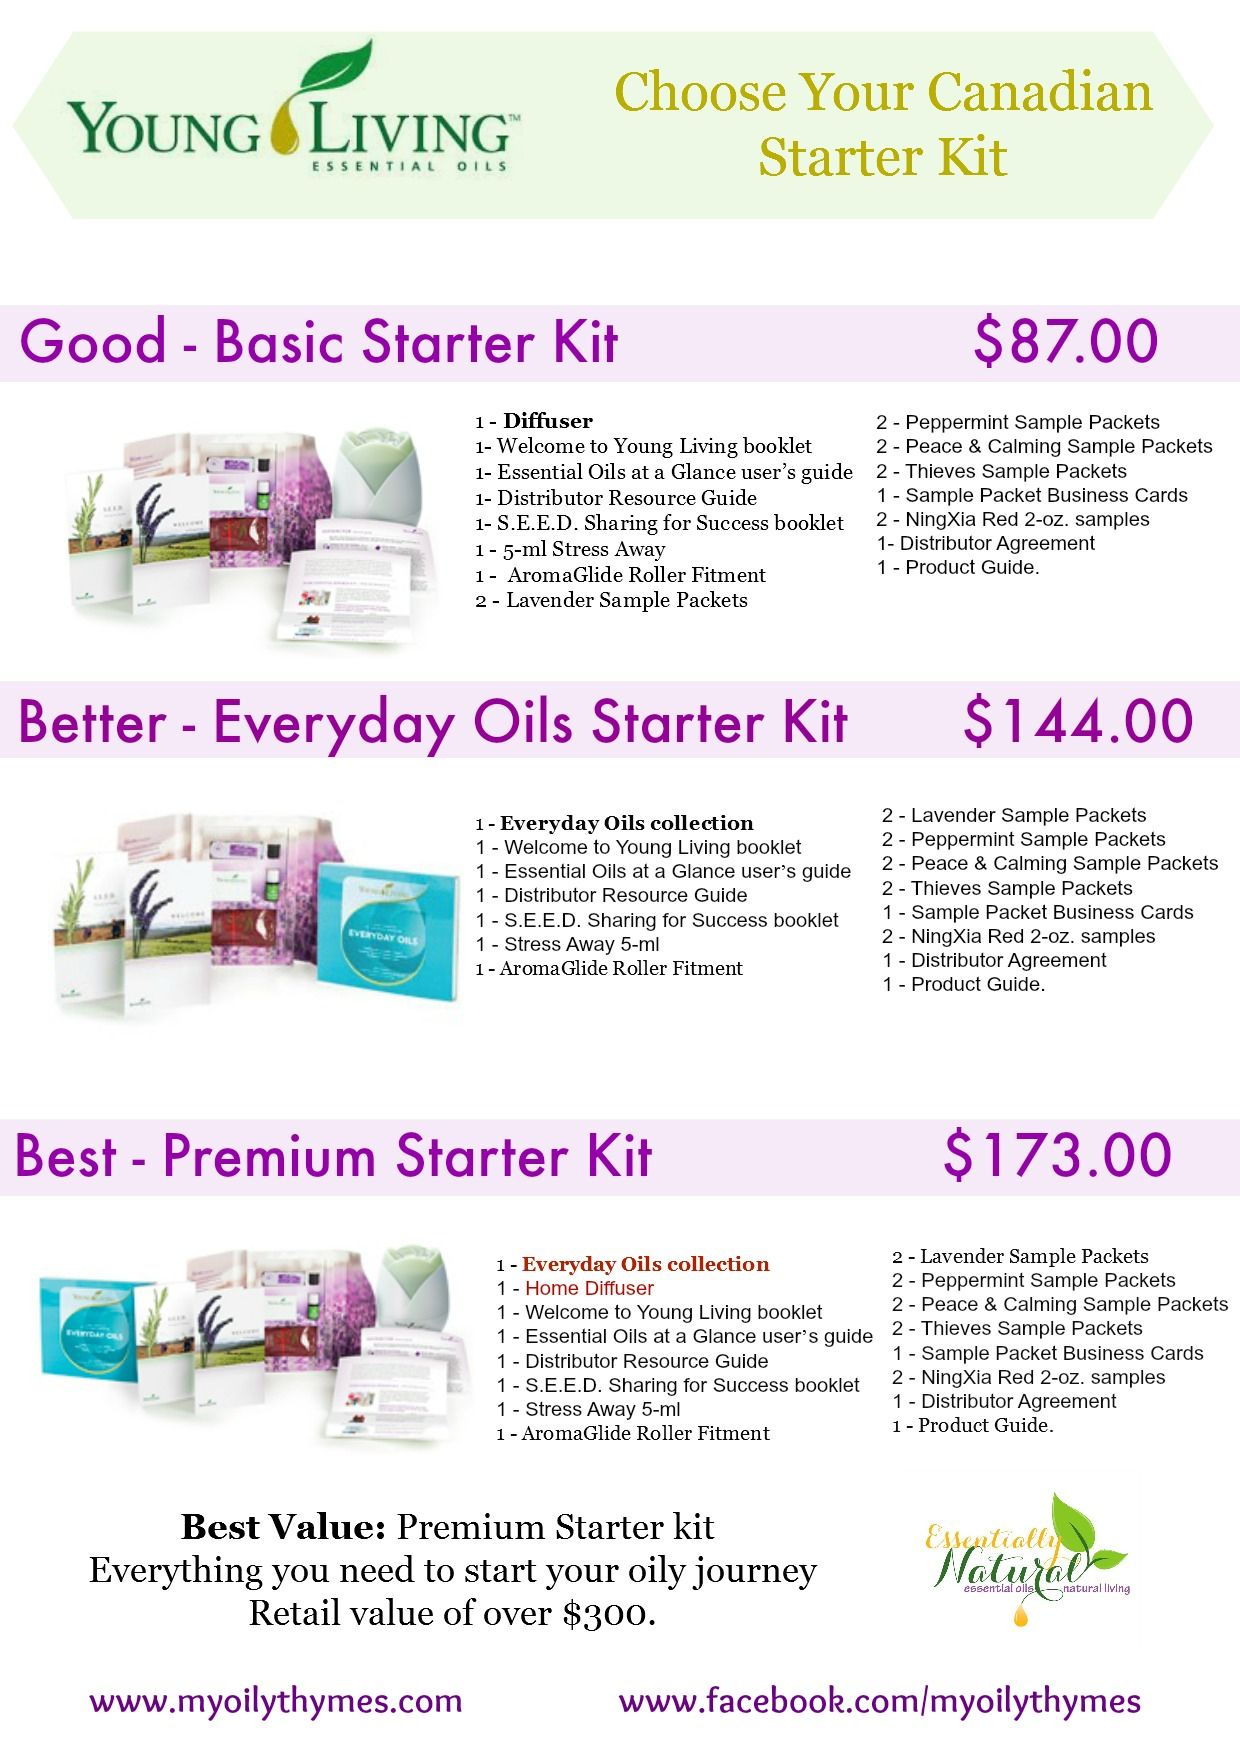 Young Living Essential Oils Offers Three Starter Kits The Premium Kit Is By Far